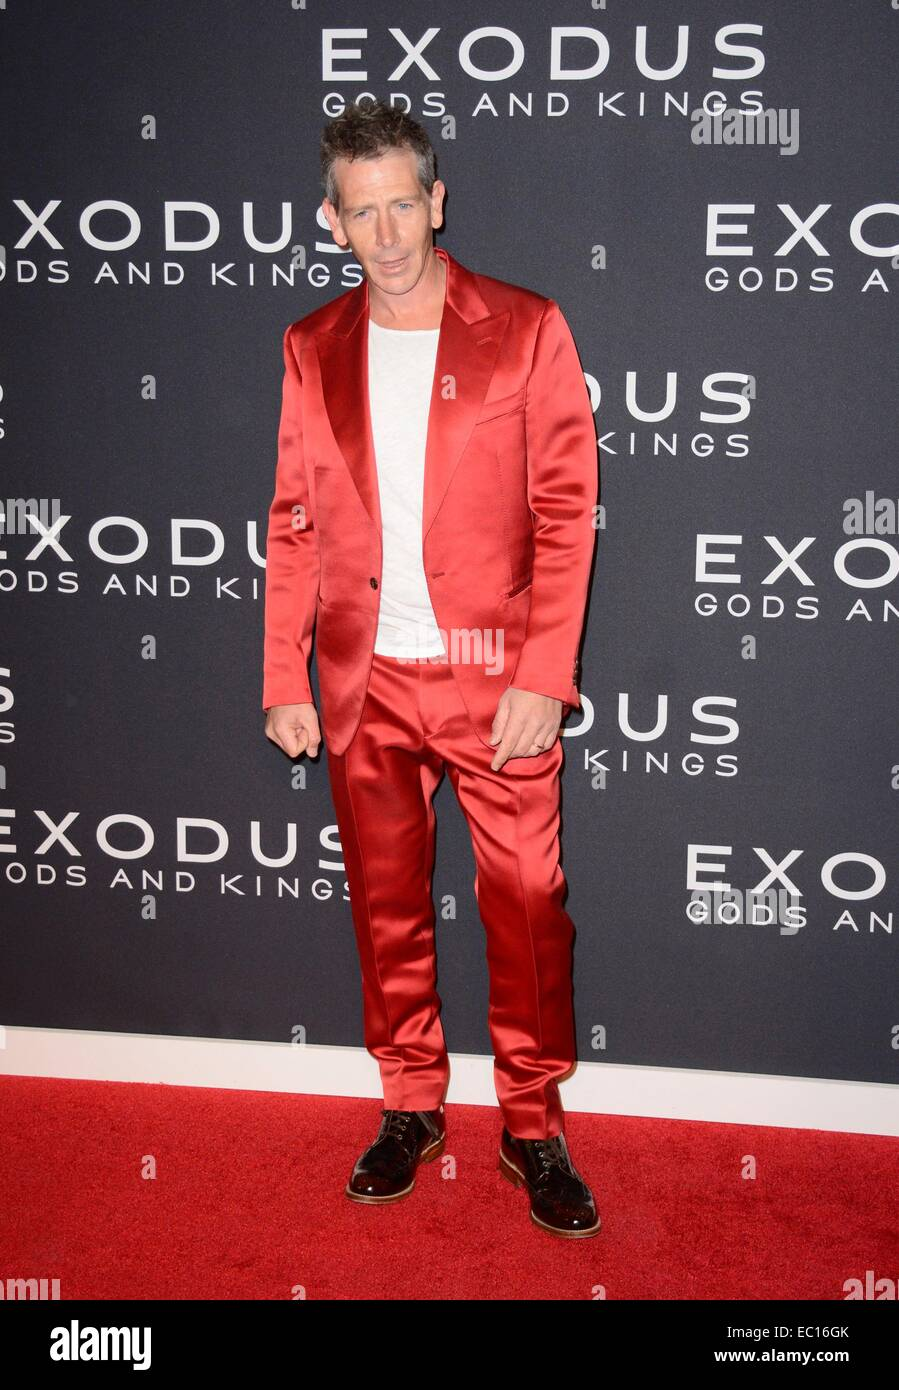 Brooklyn, NY, USA. 7th Dec, 2014. Ben Mendelsohn at arrivals for EXODUS: GODS AND KINGS Premiere, The Brooklyn Museum, - Stock Image